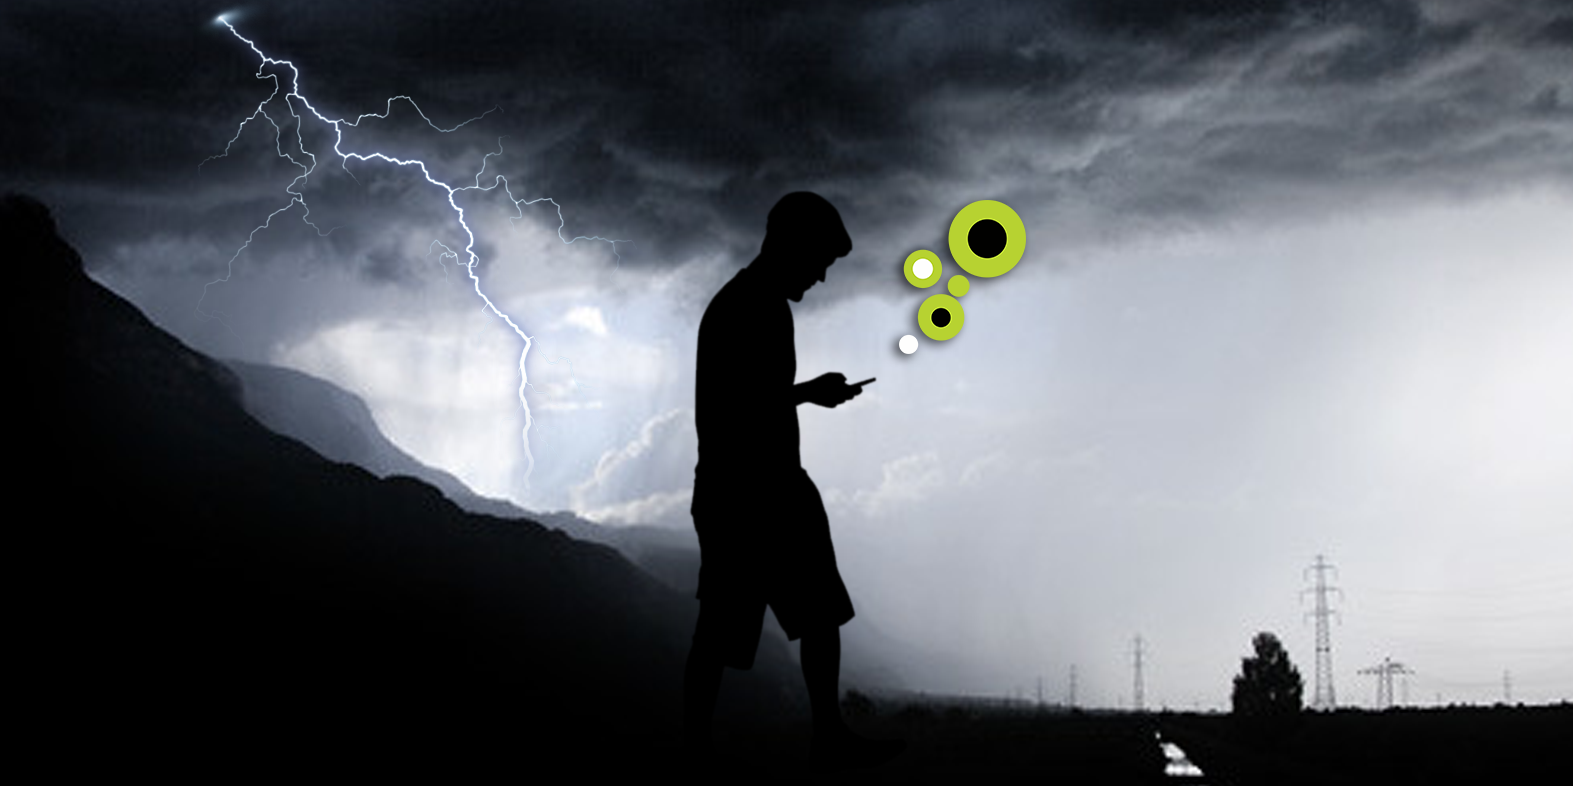 OUTDOOR ACTIVITIES MADE SAFER WITH IN-TELLIGENT'S LIGHTNING ALERTS